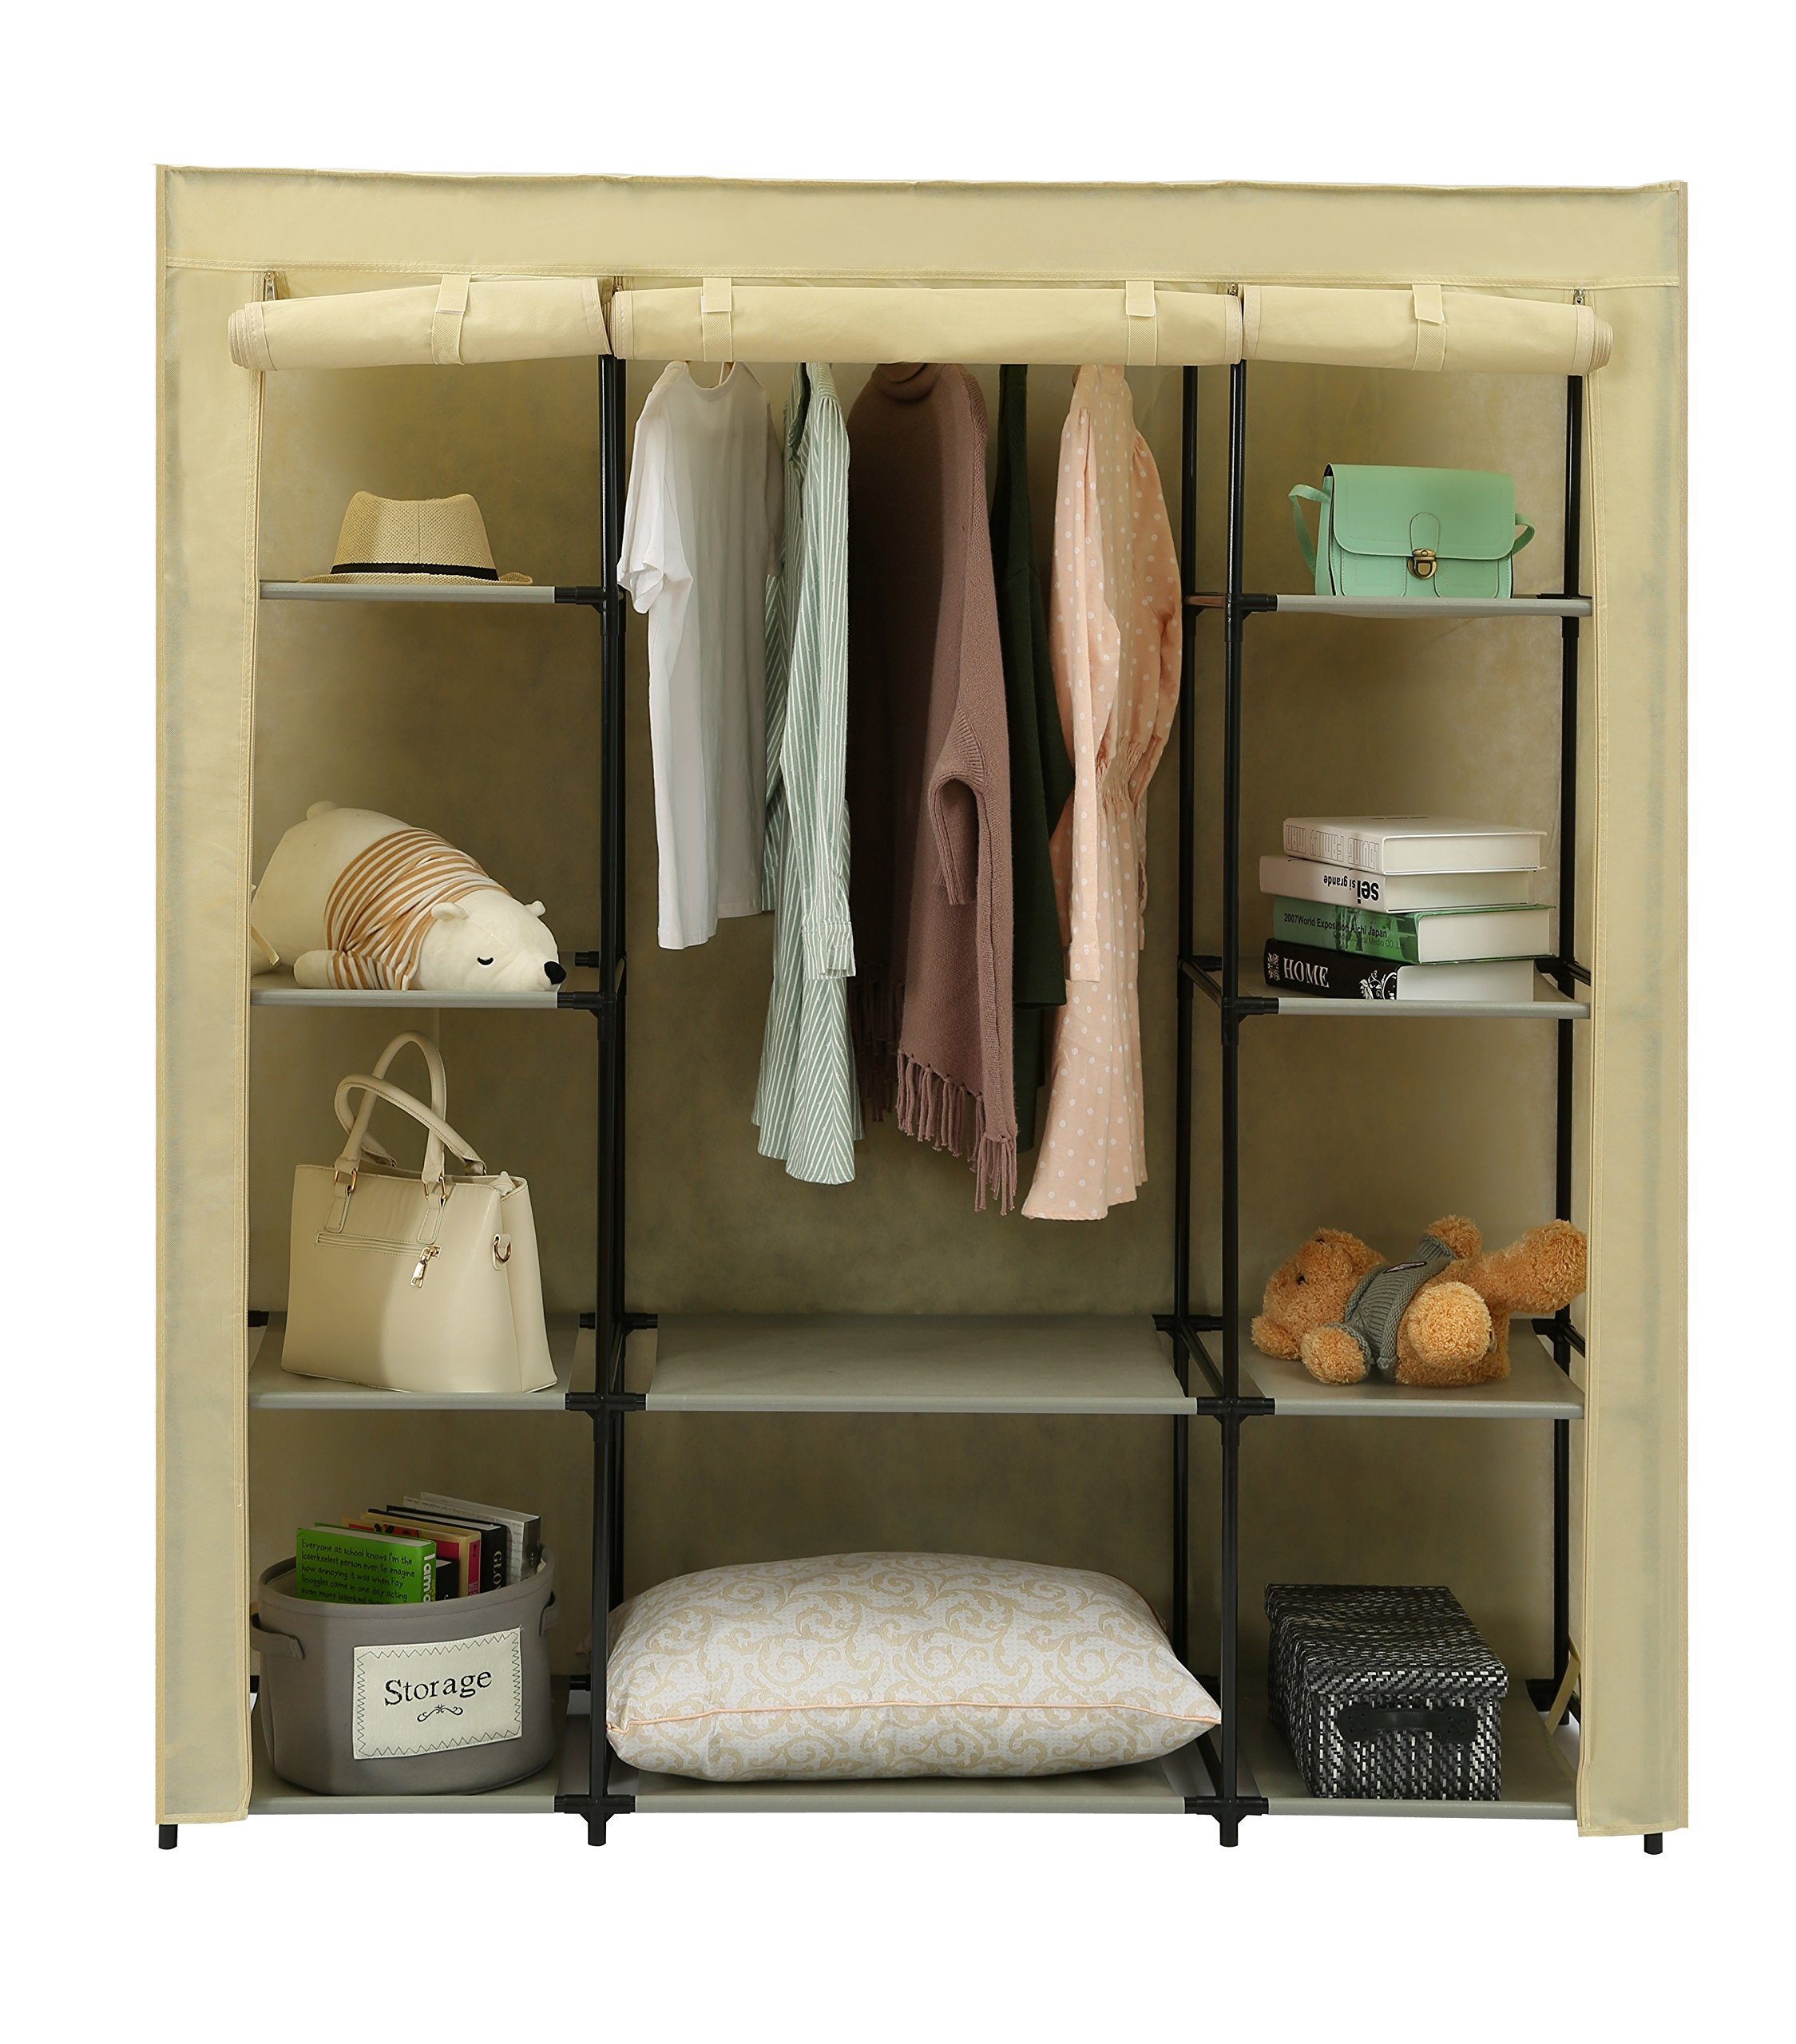 """Homebi Clothes Closet Portable Wardrobe Durable Clothes Storage Organizer Non-woven Fabric Cloth Storage Shelf with Hanging Rod and 10 Shelves for Extra Storage in Beige, 59.05""""W x 17.72"""" D x 65.4""""H"""